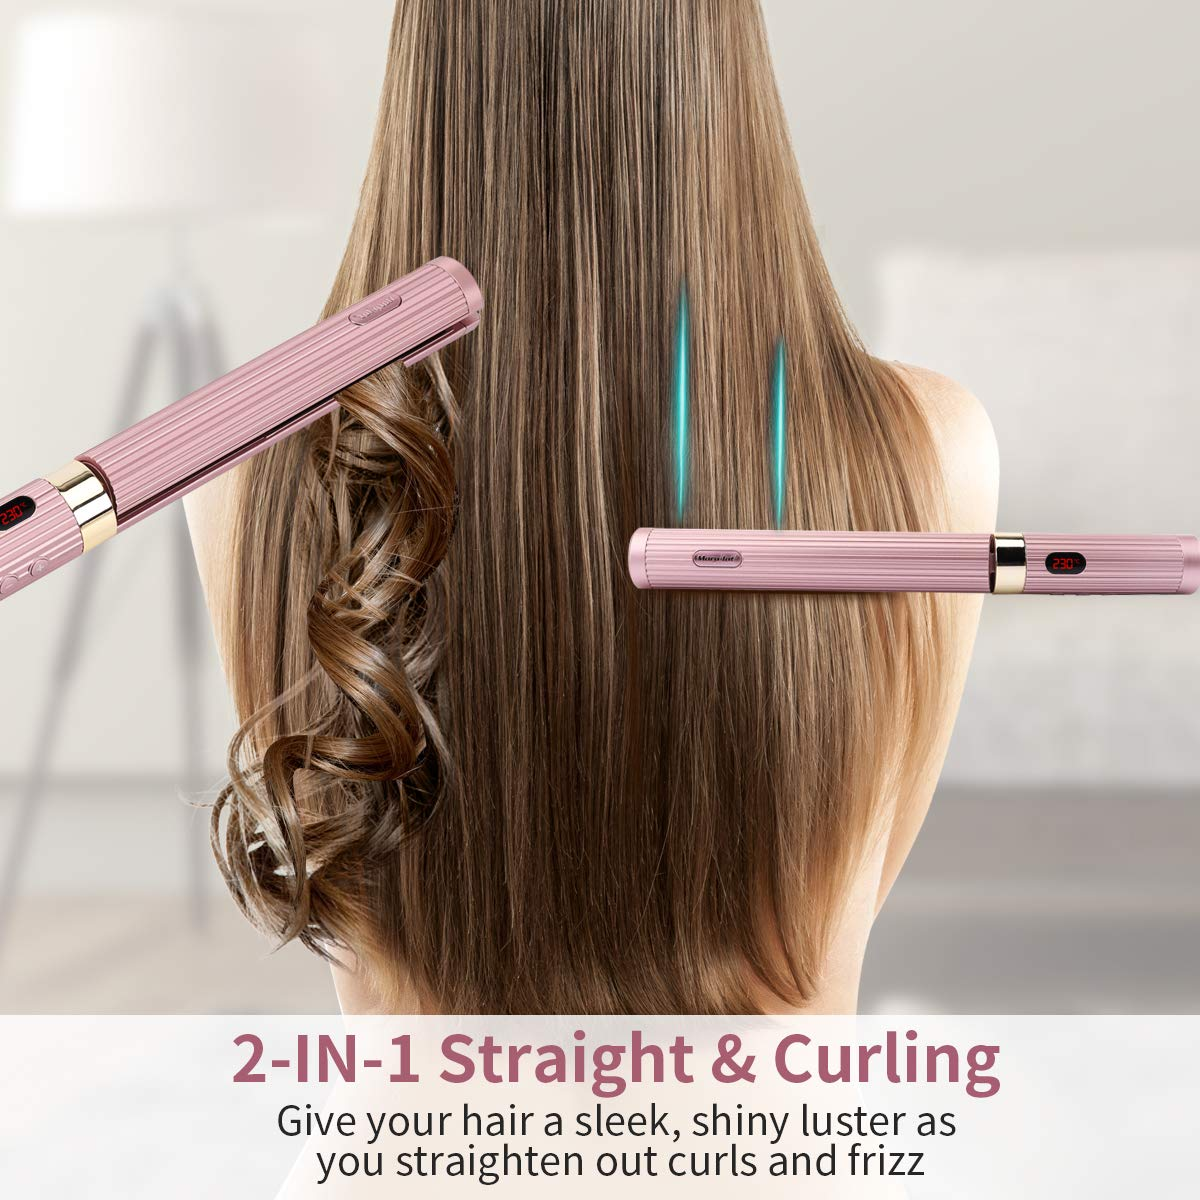 Hair Straightener, Morpilot 2-in-1 Straight & Curling Iron for All Hair Type, 3D Floating Plates Professional Salon Hair Straightener with Dual Voltage LCD Display Adjustable Temperature.